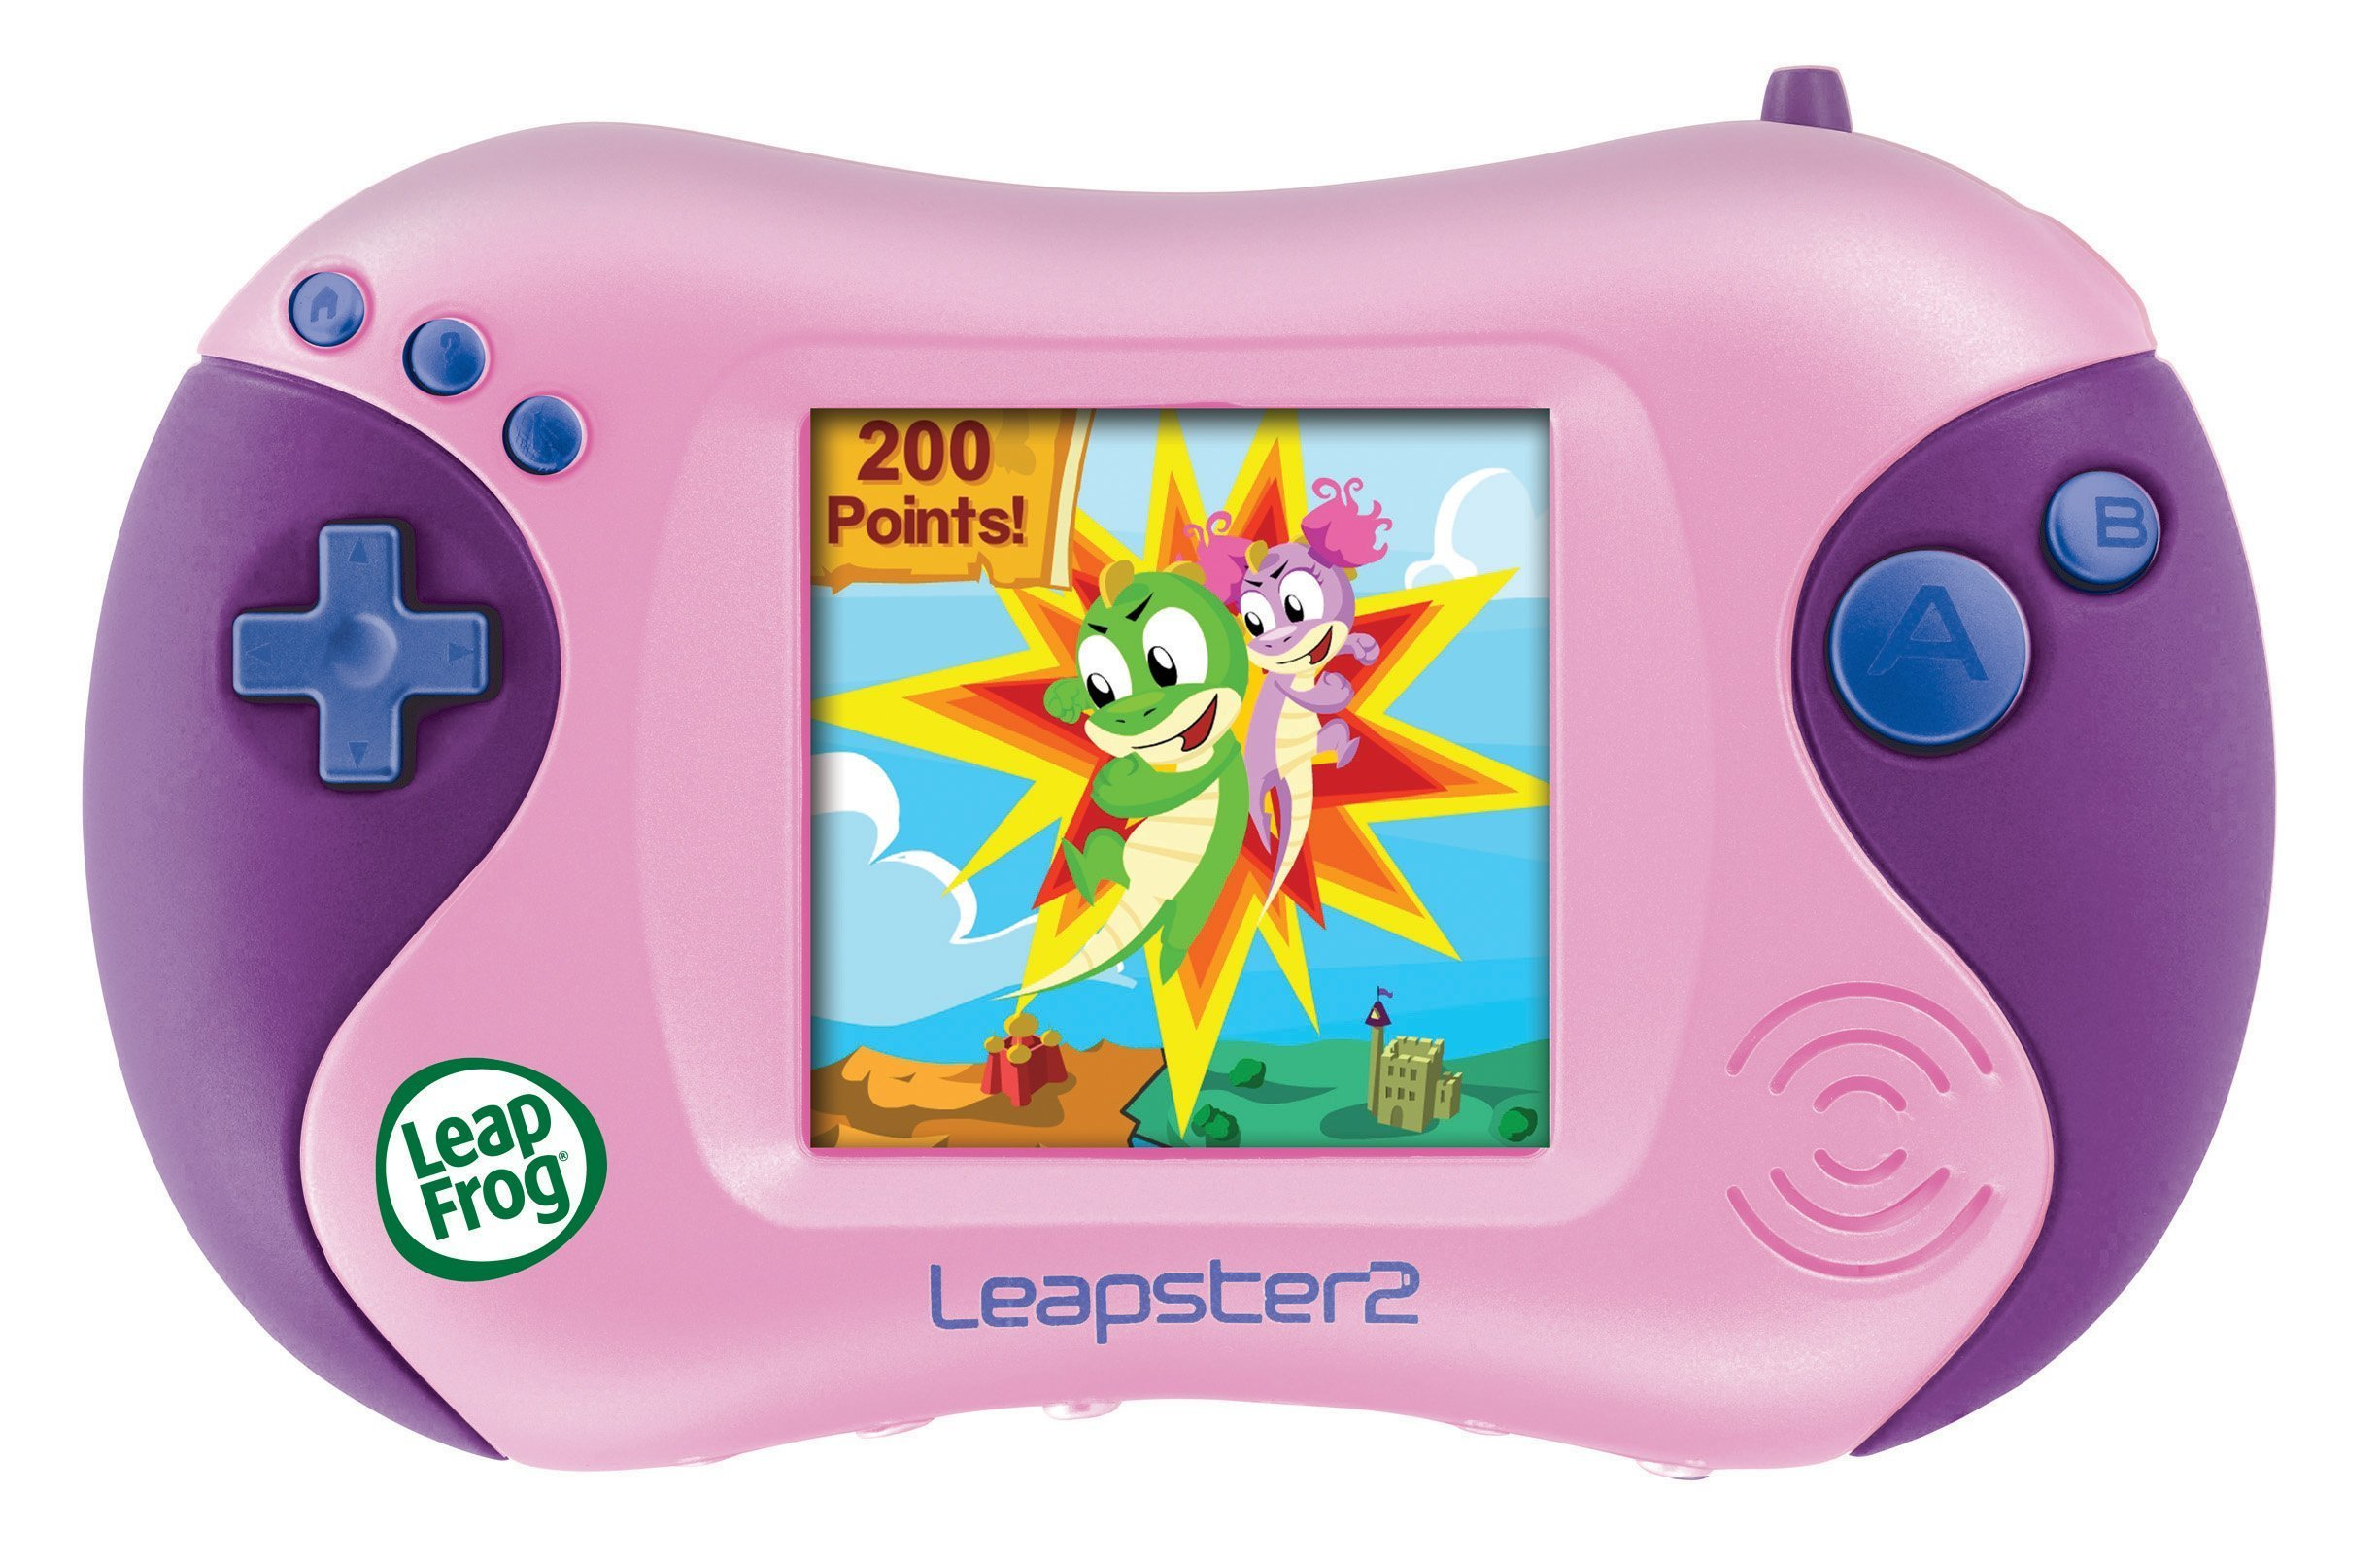 LeapFrog Leapster 2 Learning Game System - Pink by LeapFrog (Image #1)